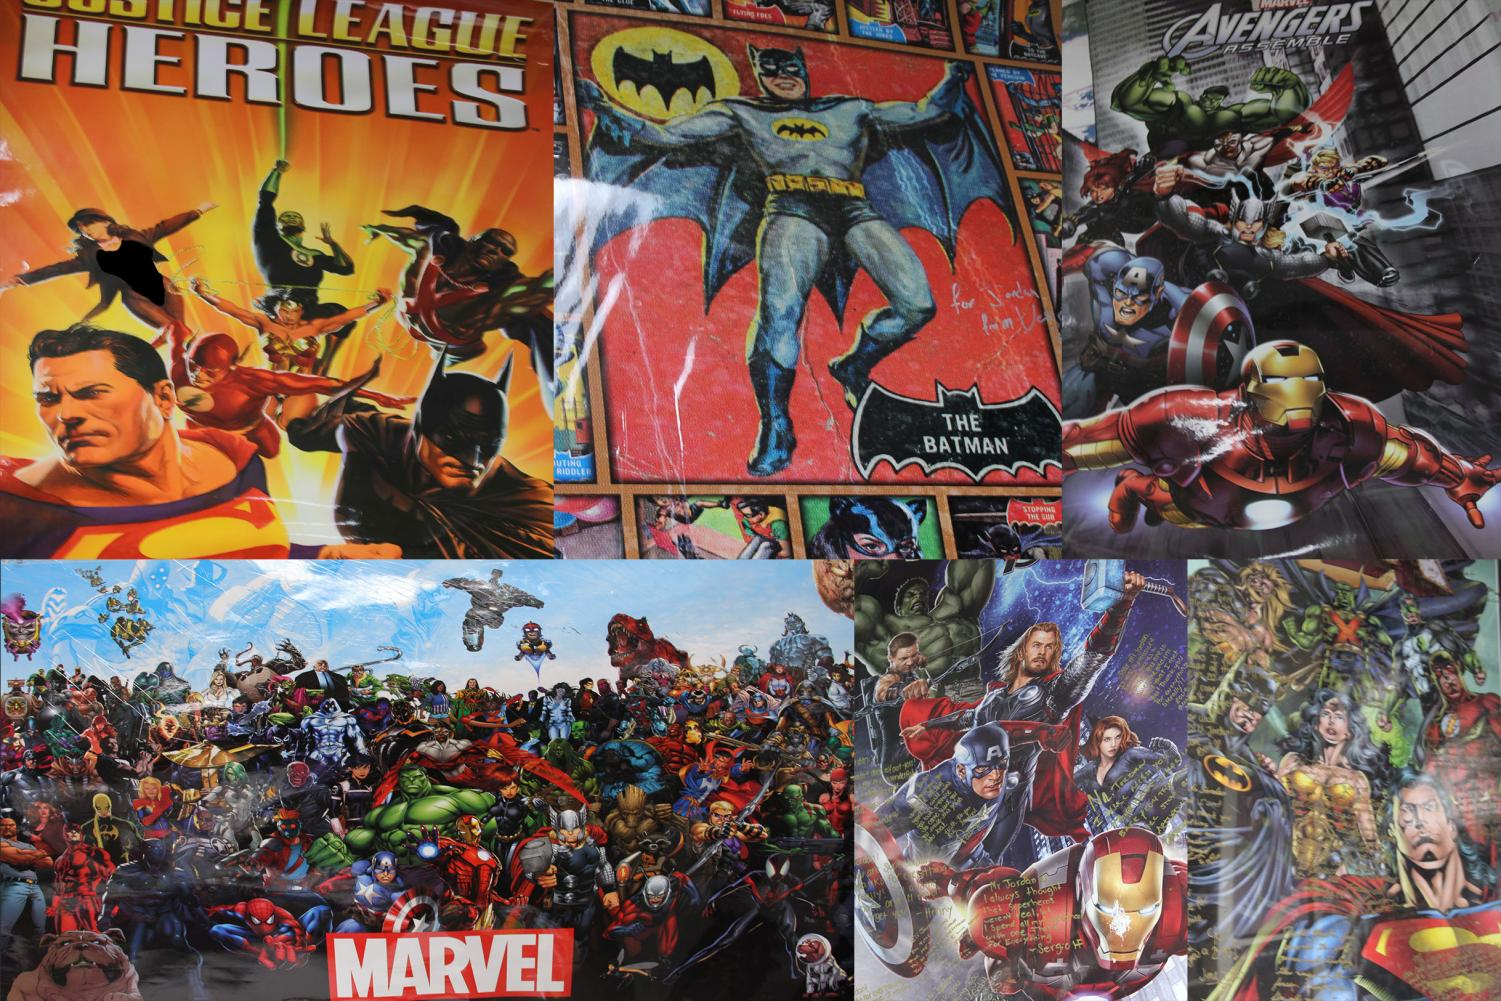 Jordan's collection of super hero posters